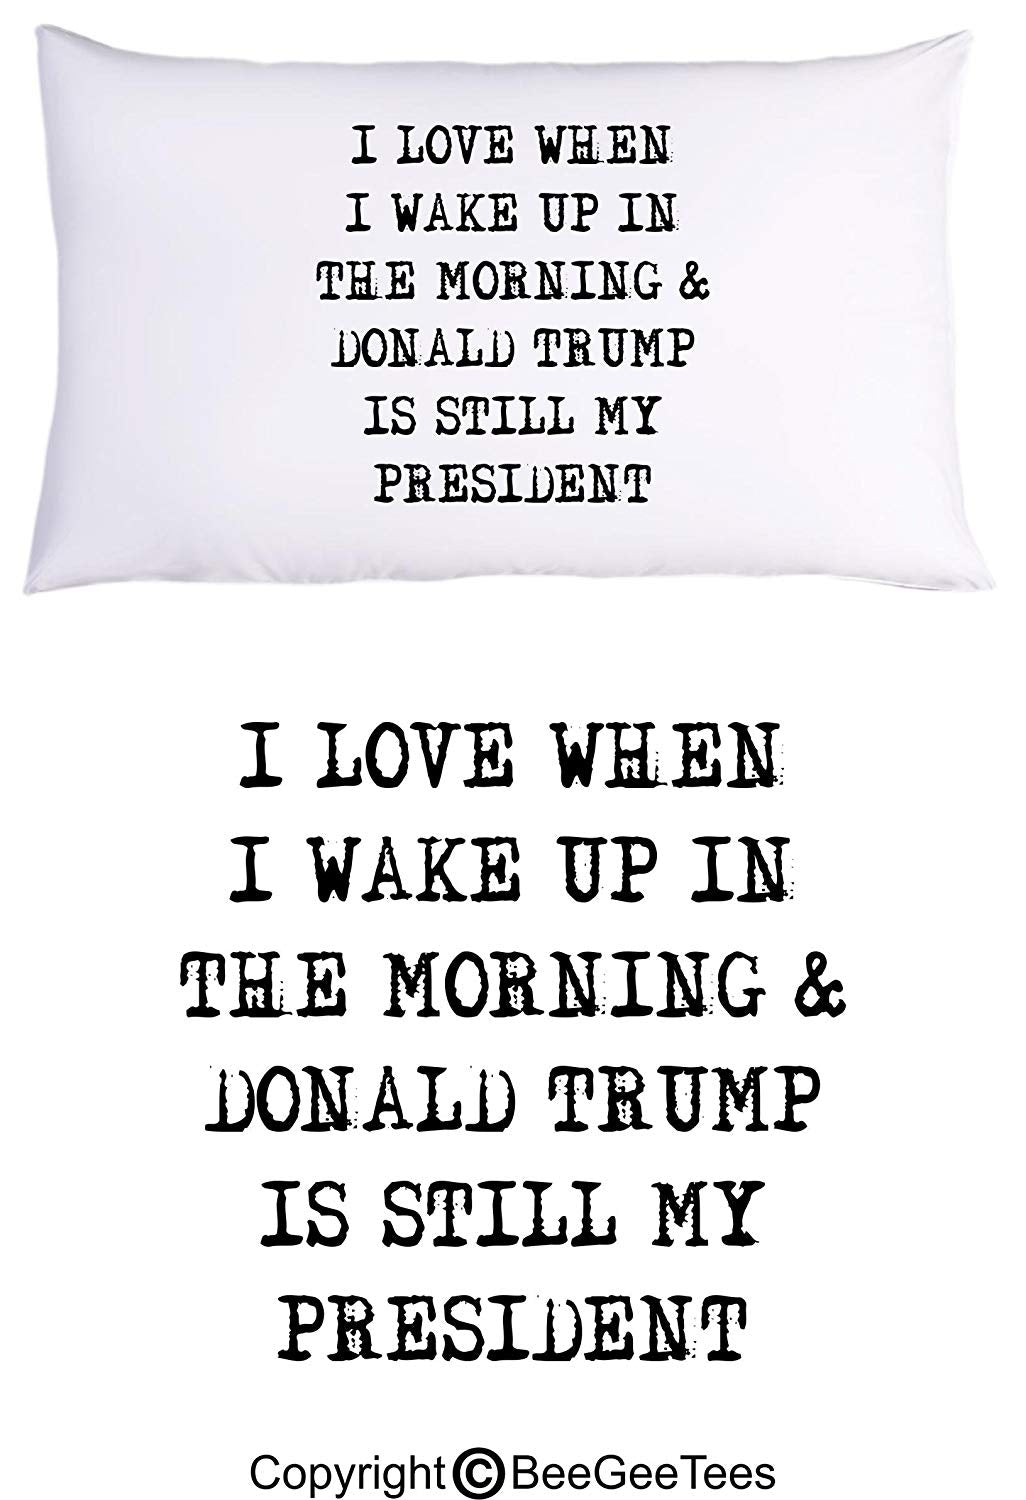 I Love When I Wake Up In The Morning and Donald Trump Is Still My President Funny Pillowcase by BeeGeeTees (1 Queen Pillowcase)